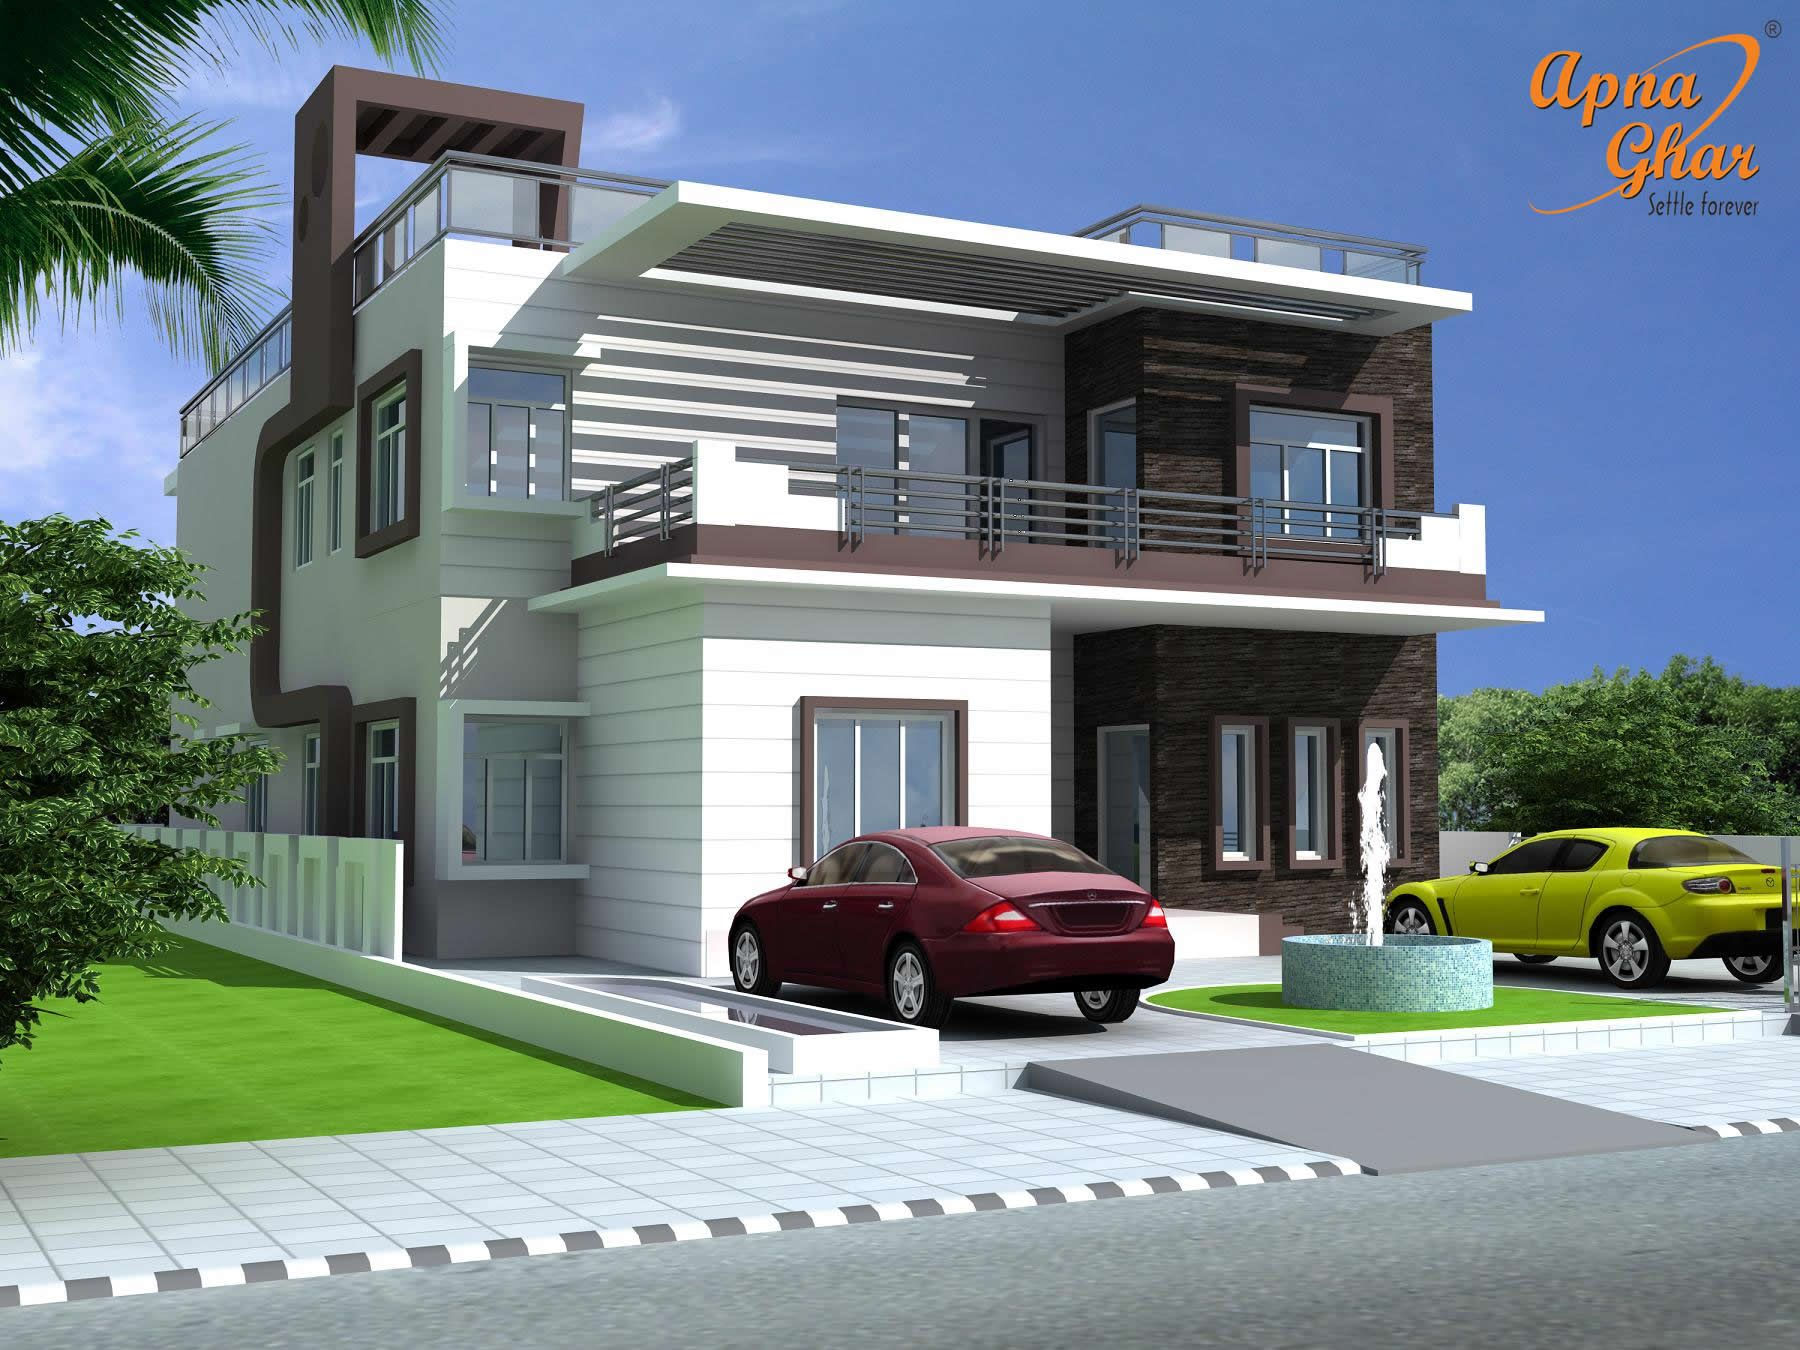 6 bedrooms duplex house design in 390m2 13m x 30m click for Duplex house models